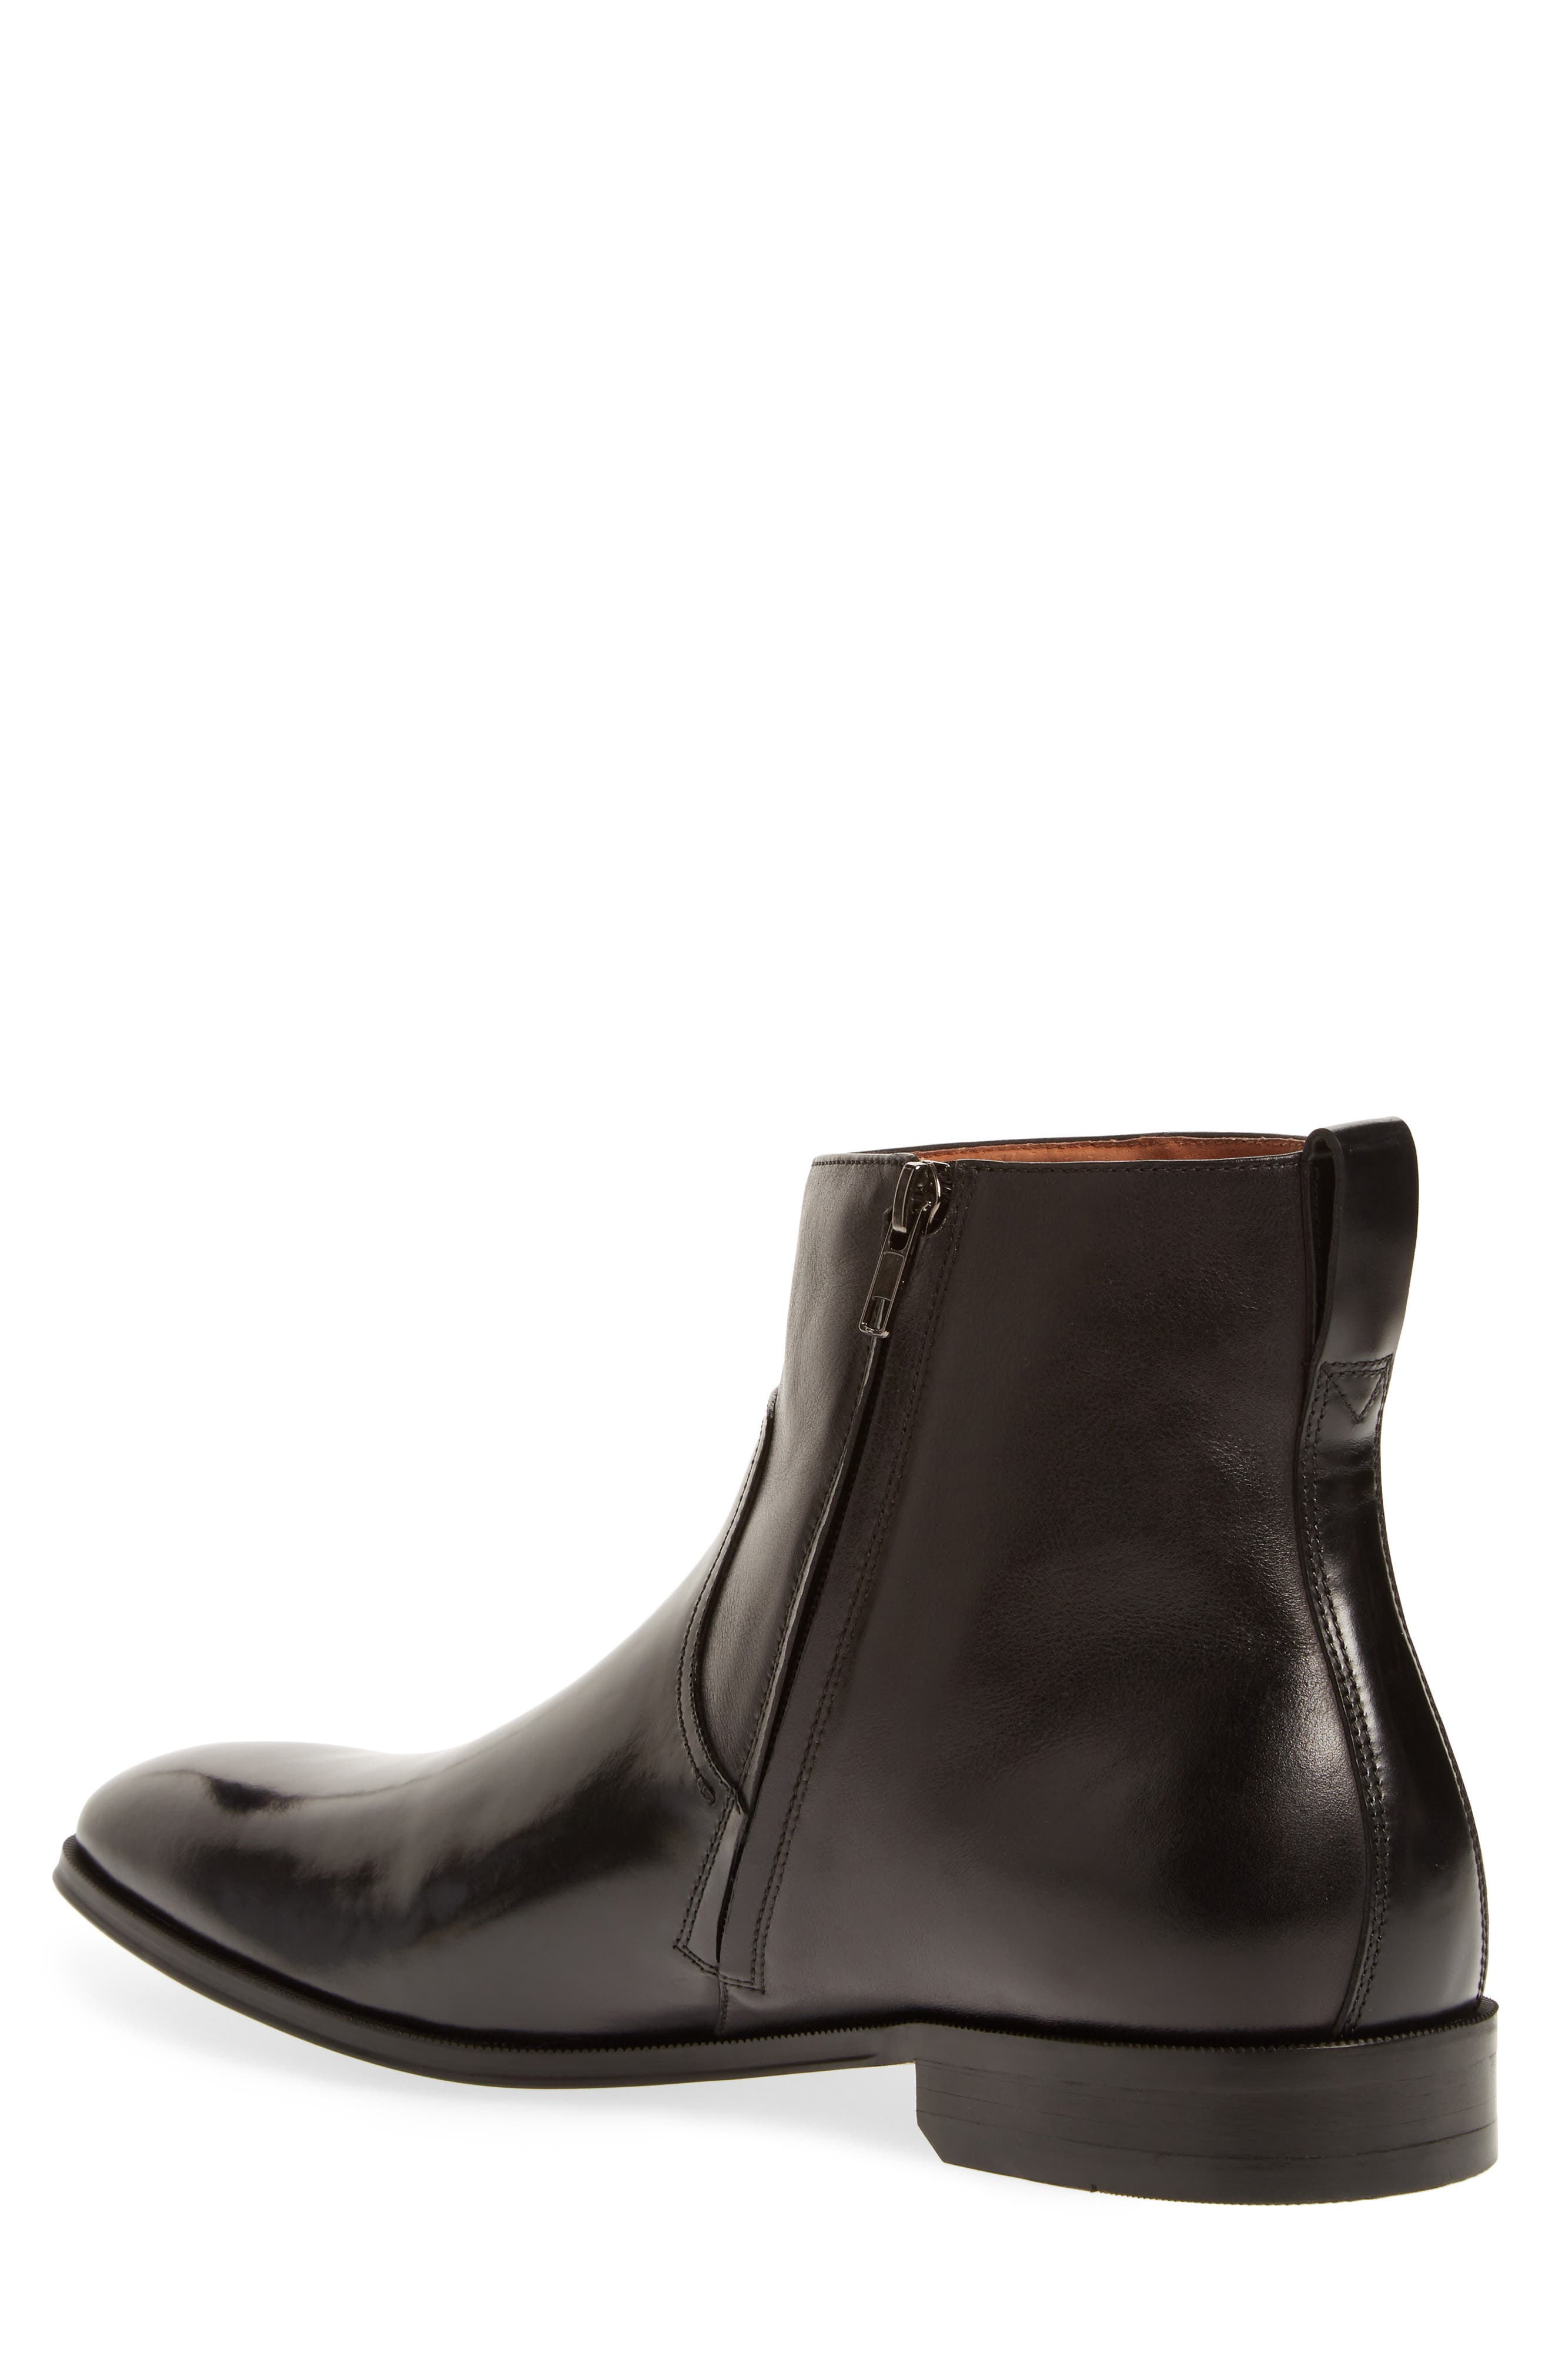 Belfast Mid Zip Boot,                             Alternate thumbnail 2, color,                             BLACK LEATHER